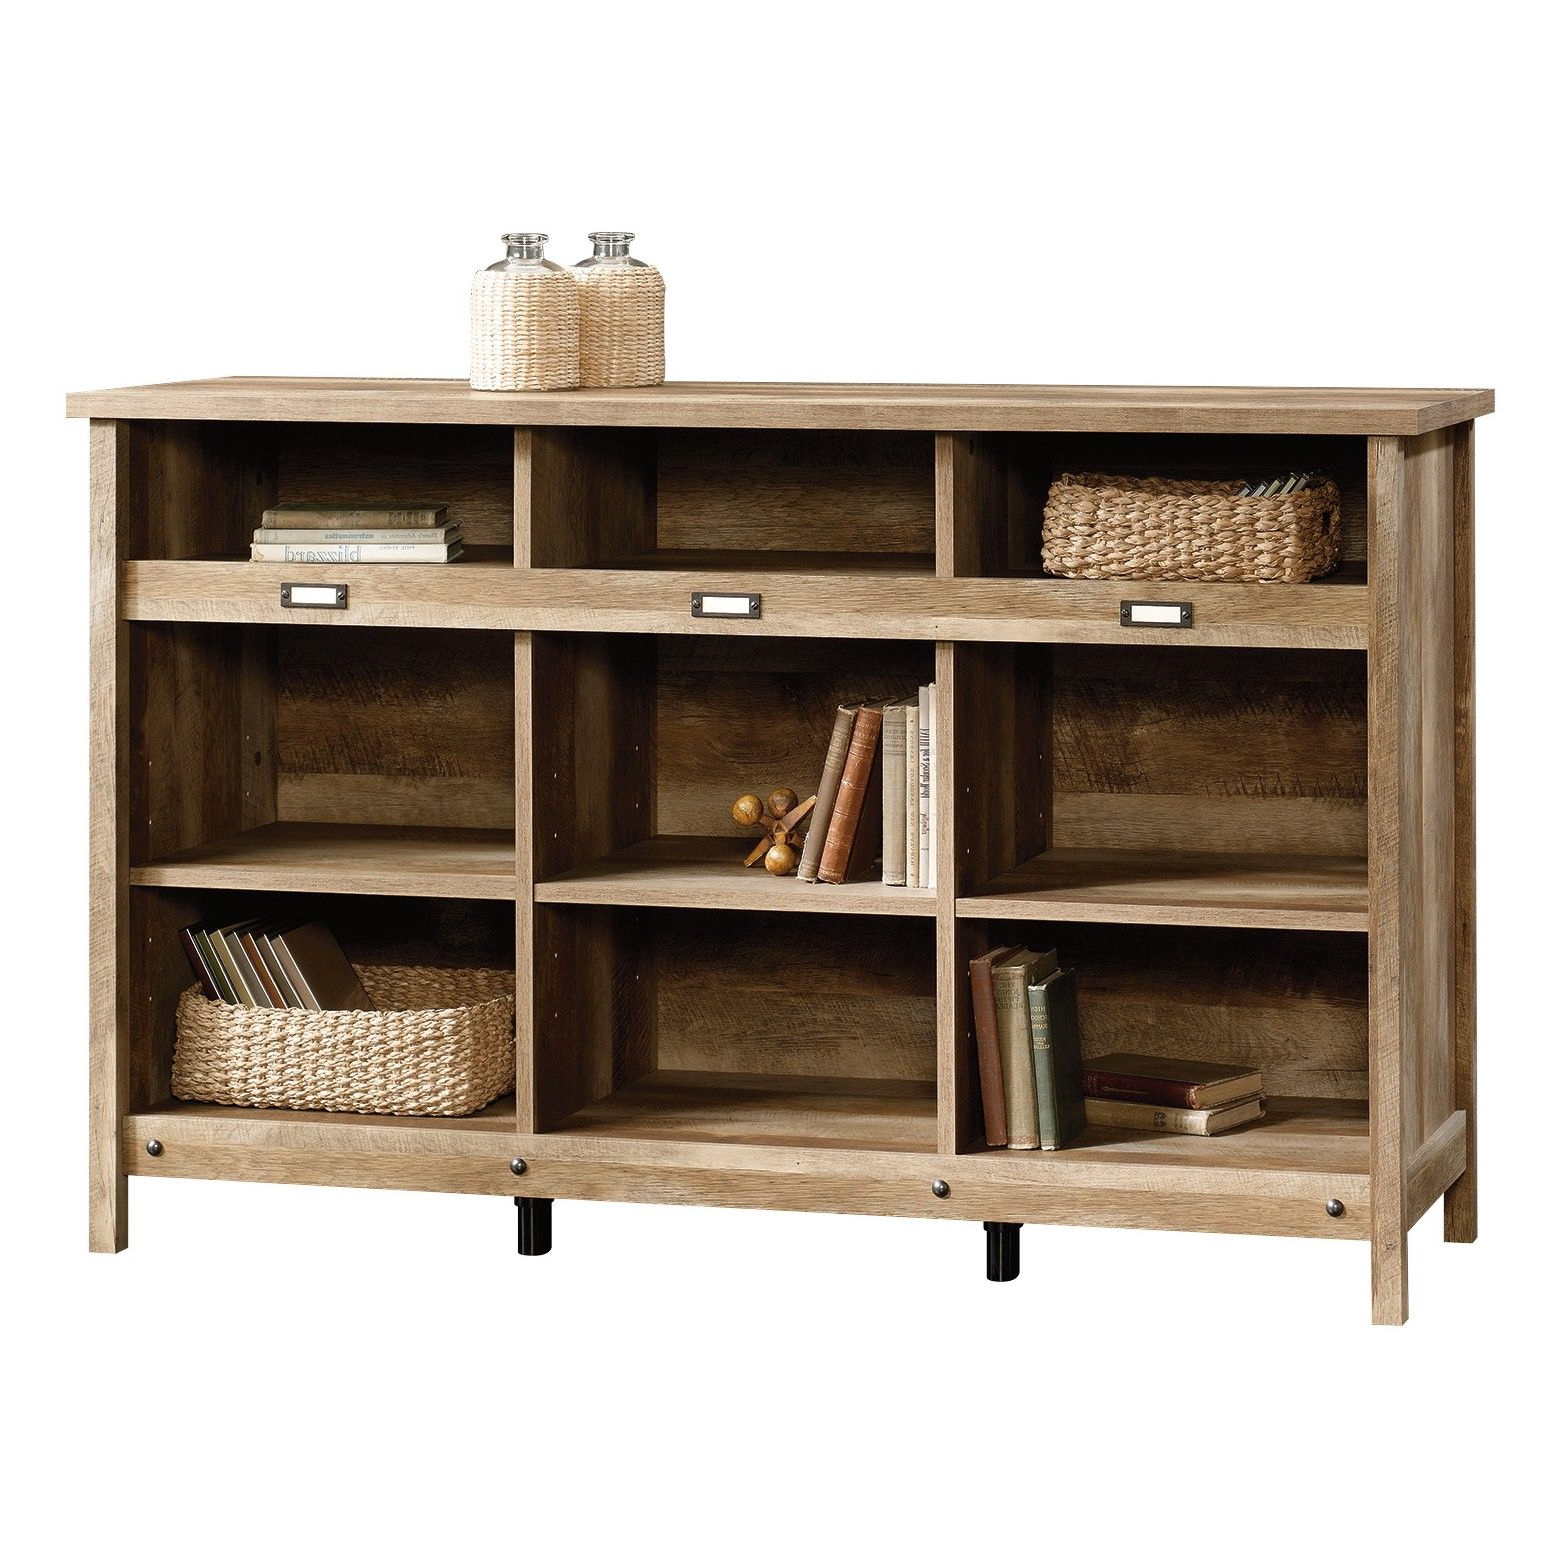 Adept Storage Credenza – Craftsman Oak – Sauder, Brown Within Famous Finkelstein Cube Bookcases (Gallery 11 of 20)